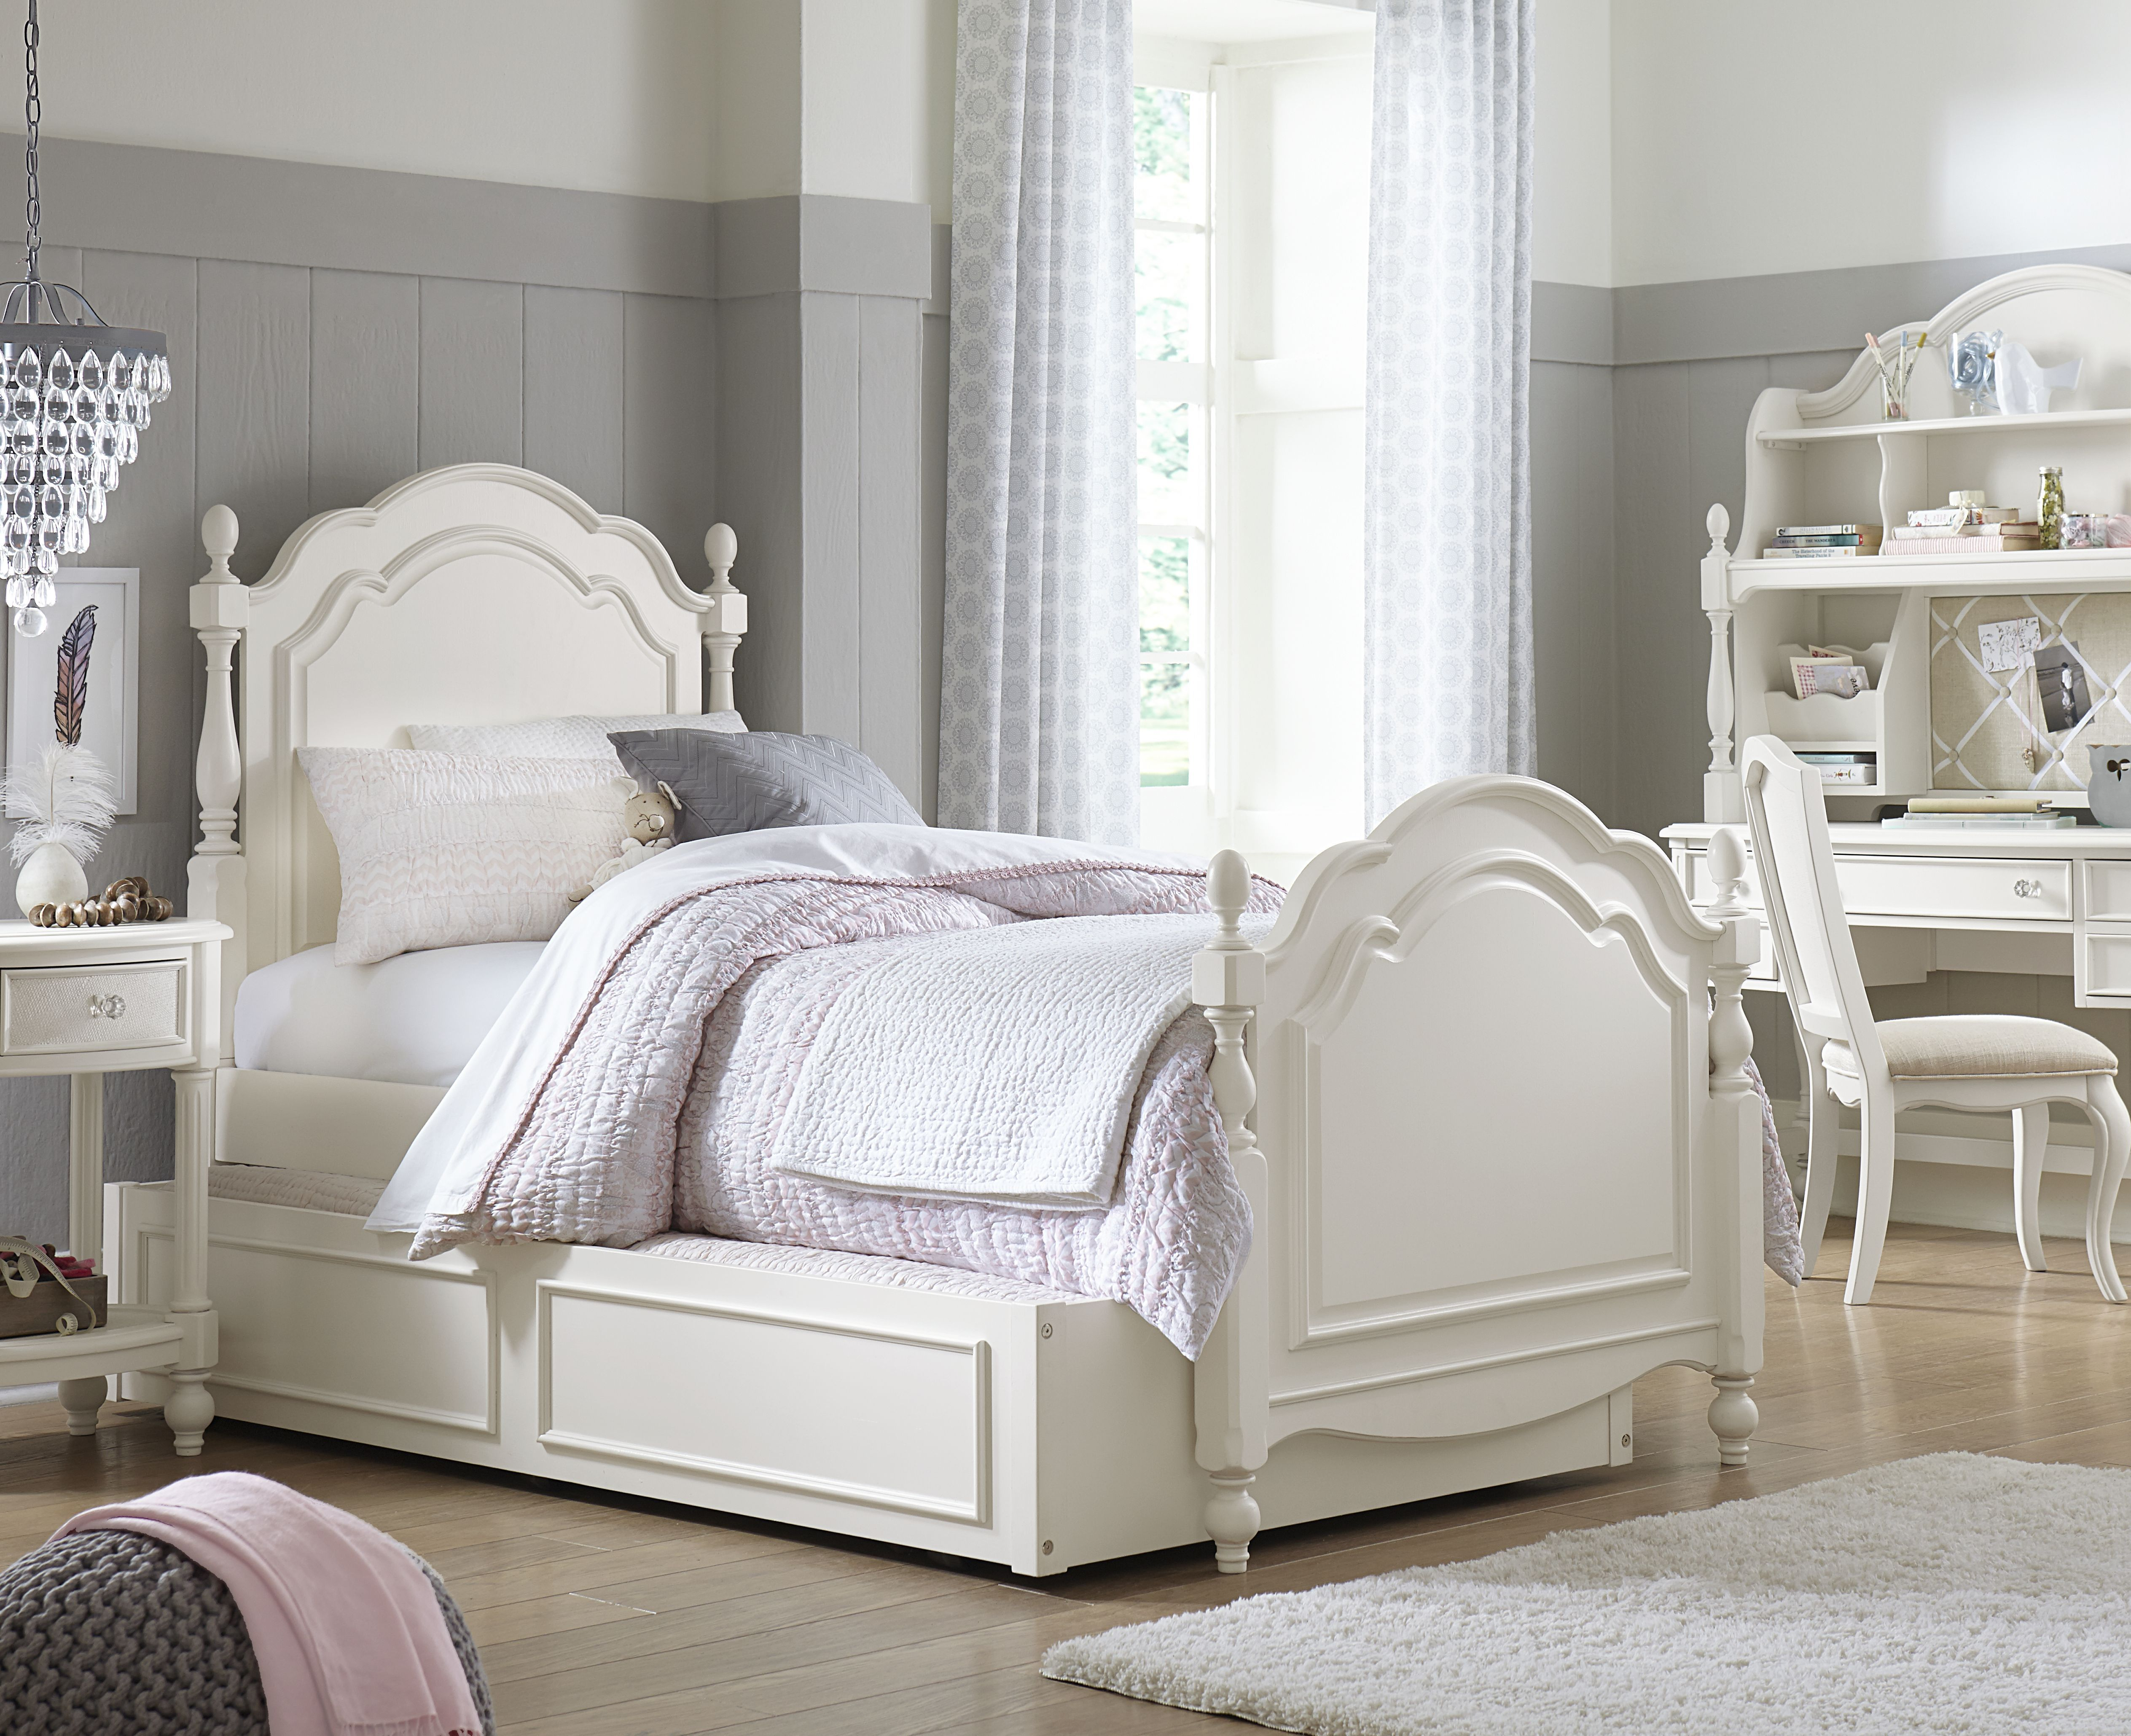 The Harmony Collection By Wendy Bellissimo Summerset Low Poster Bed Legacy Cl Classic Bedroom Furniture Kids Bedroom Furniture Sets Girls Bedroom Furniture